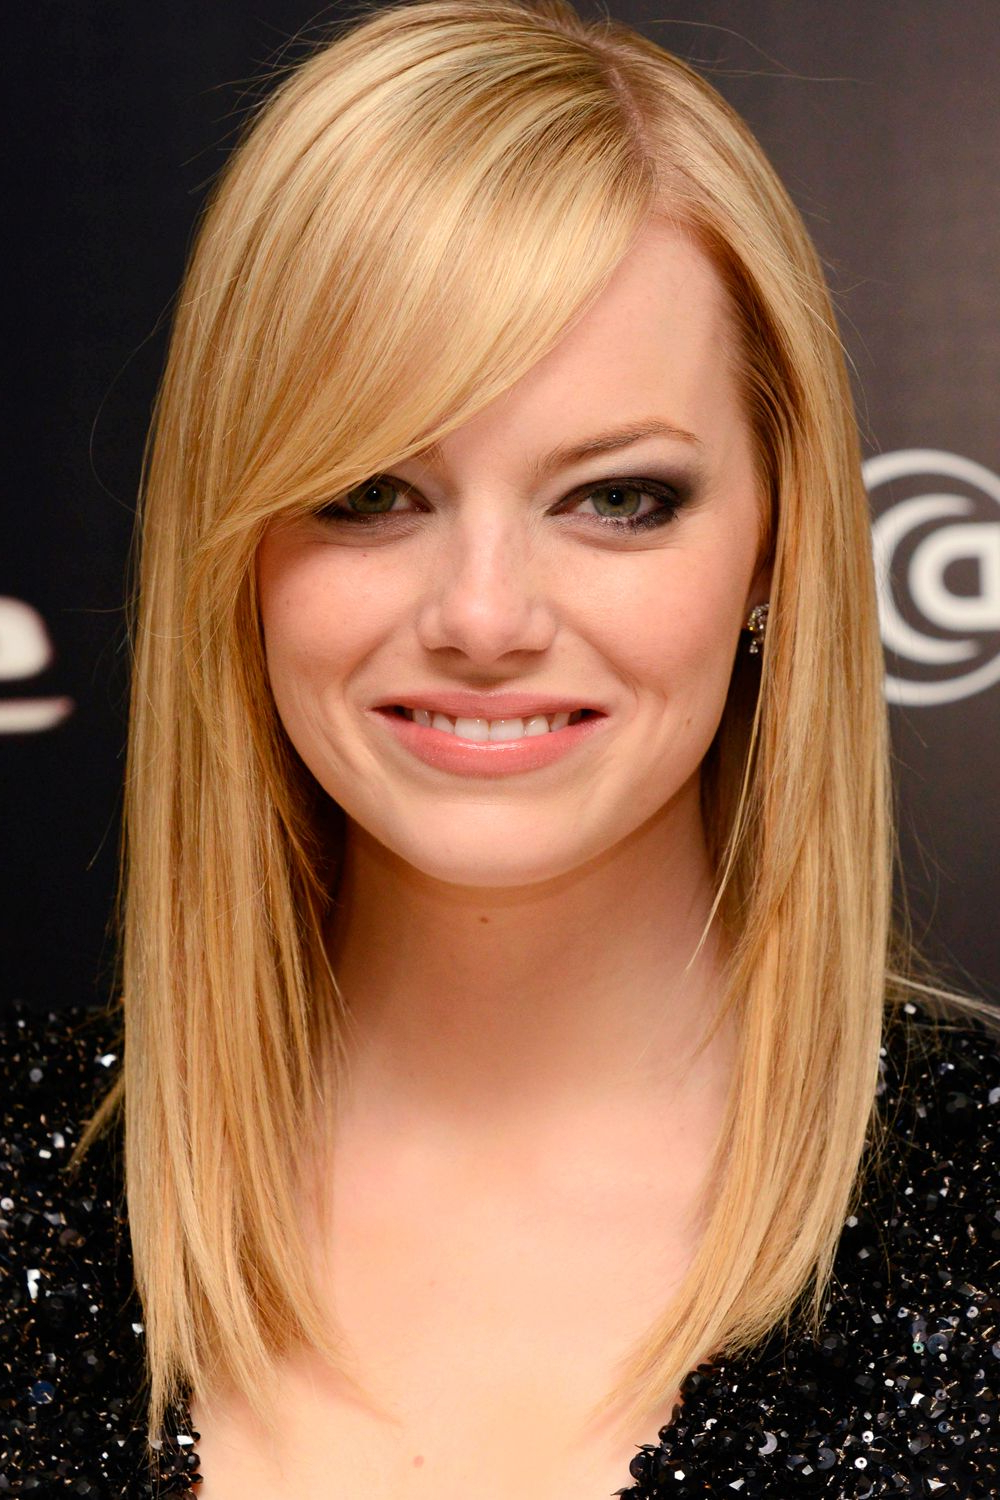 Cute Medium Length Hairstyles With Side Bangs For Thin Blonde And With Most Recent Medium Hairstyles With Side Bangs For Round Faces (View 6 of 20)